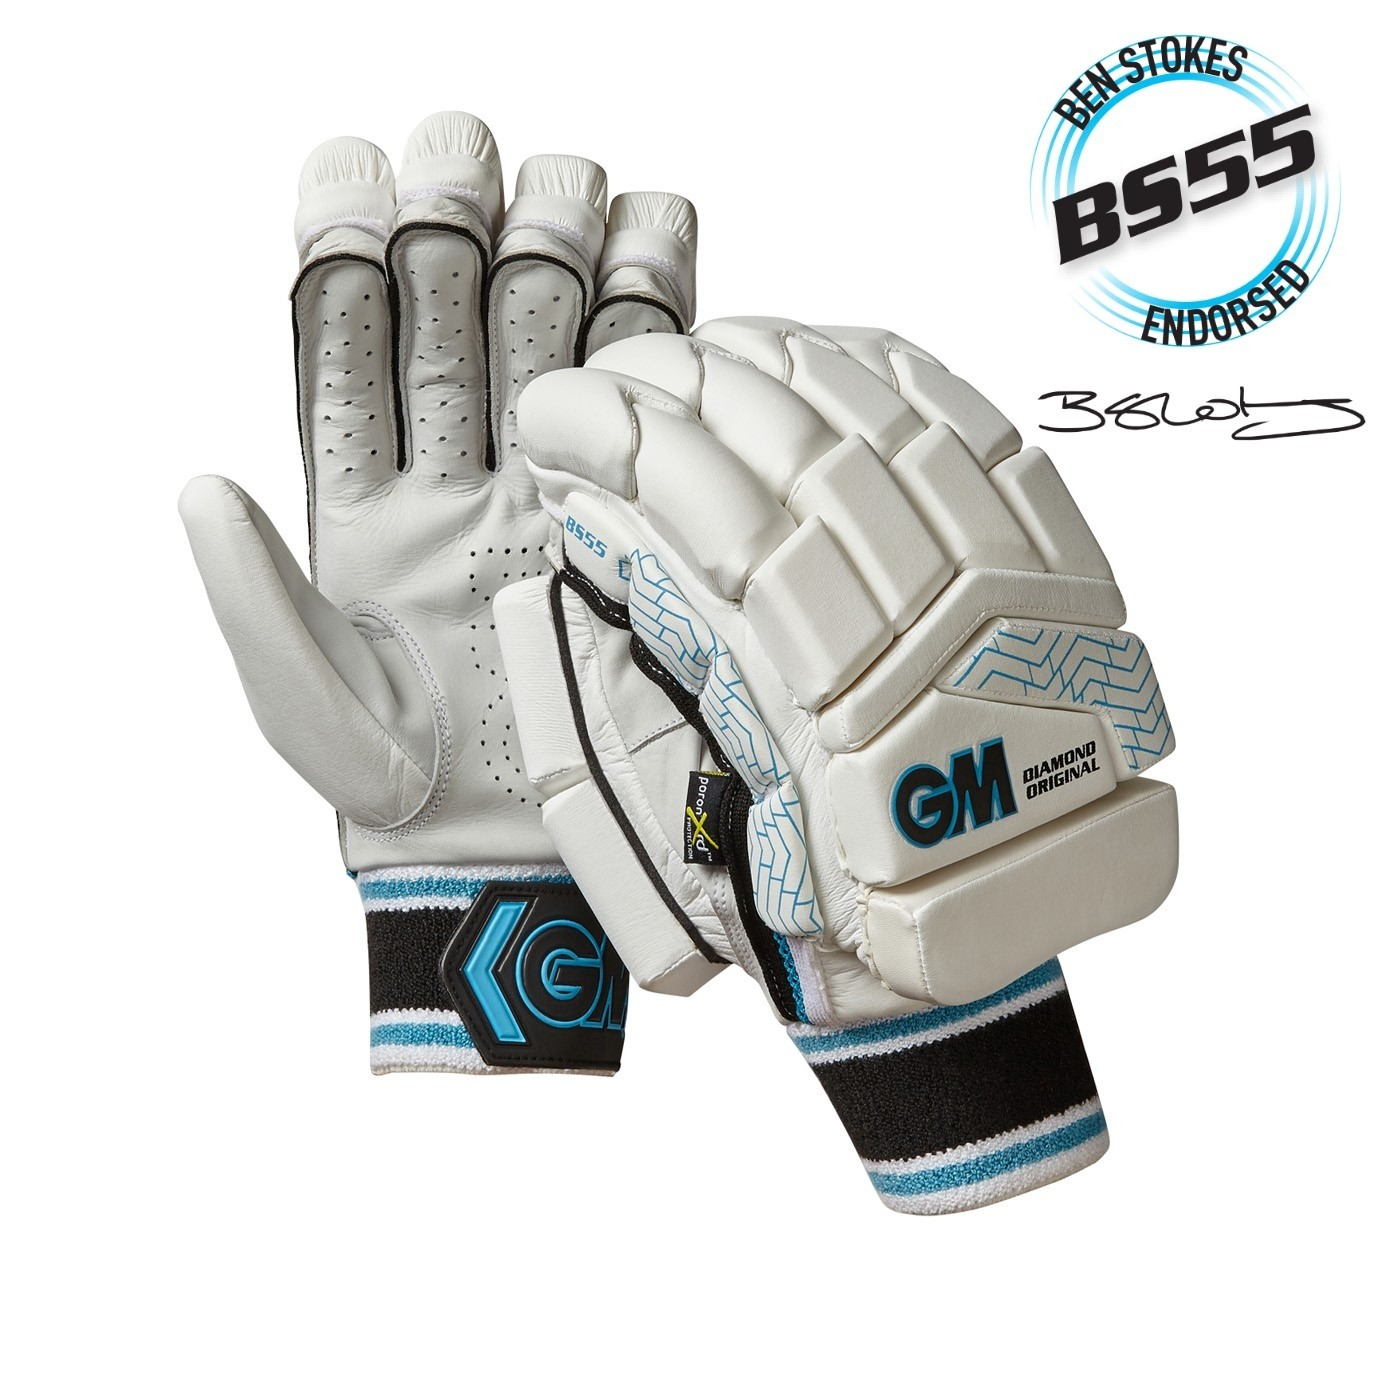 DIAMOND ORIGINAL BATTING GLOVES